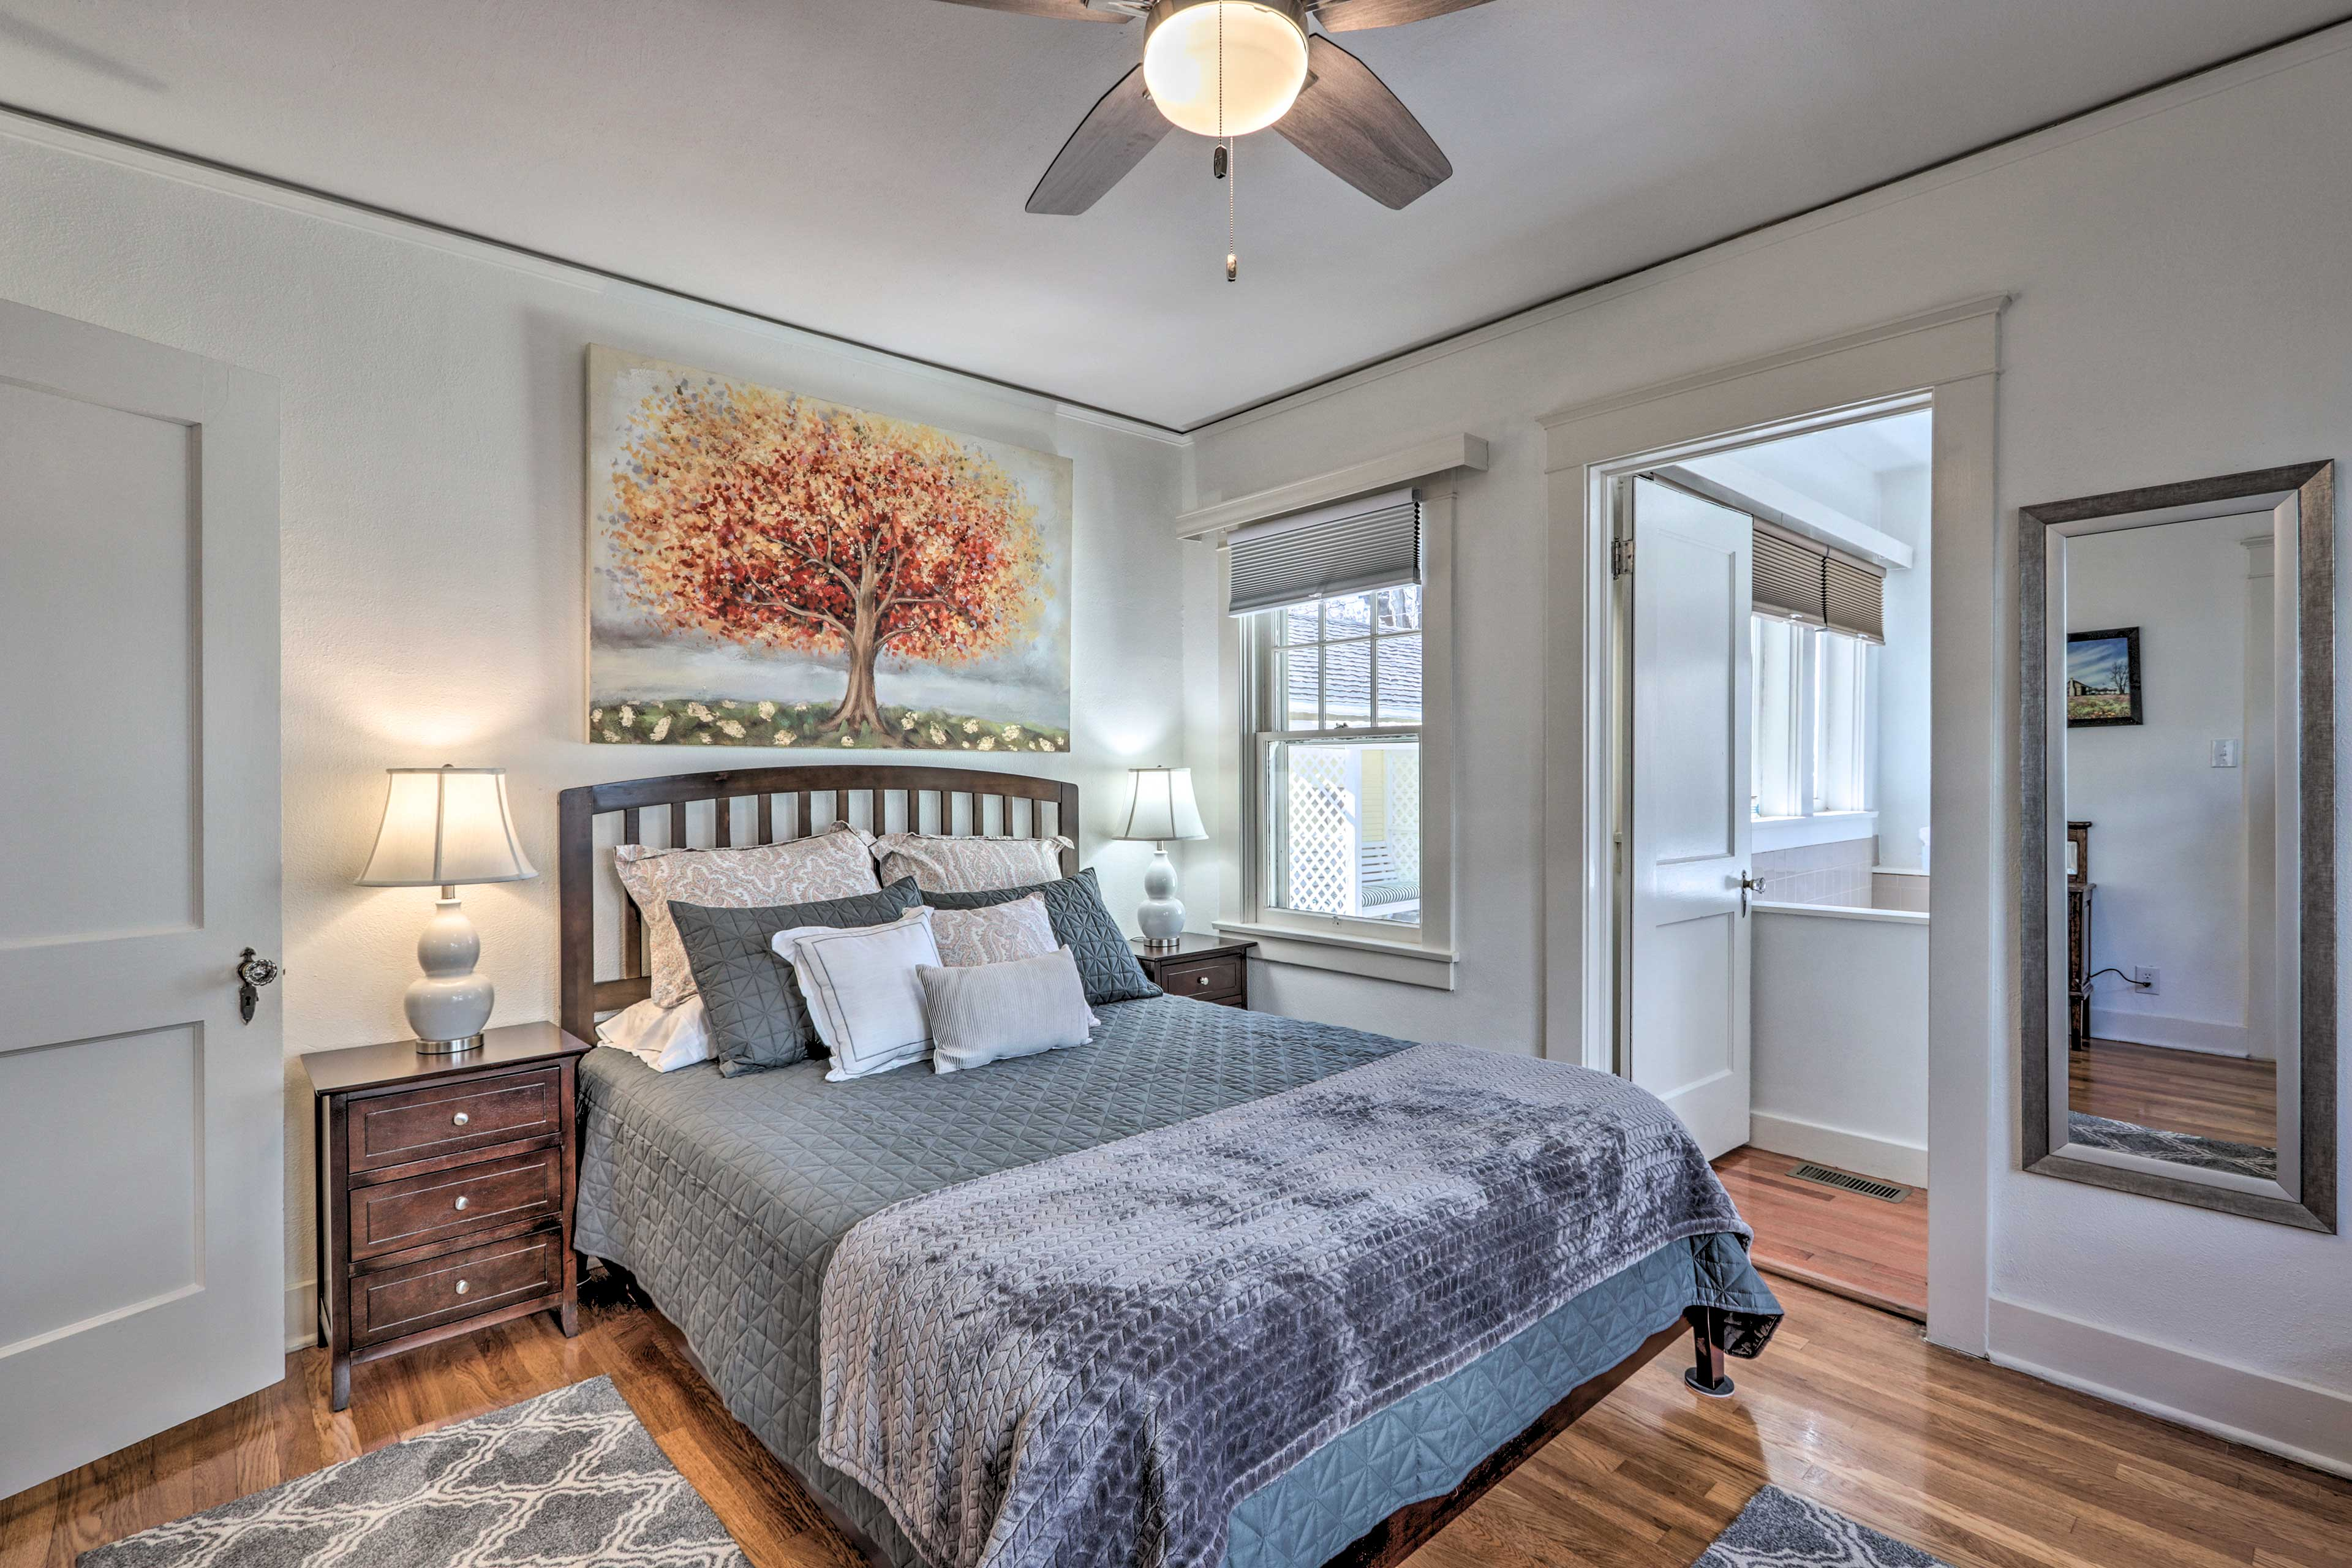 Sink into the queen bed in the master bedroom.